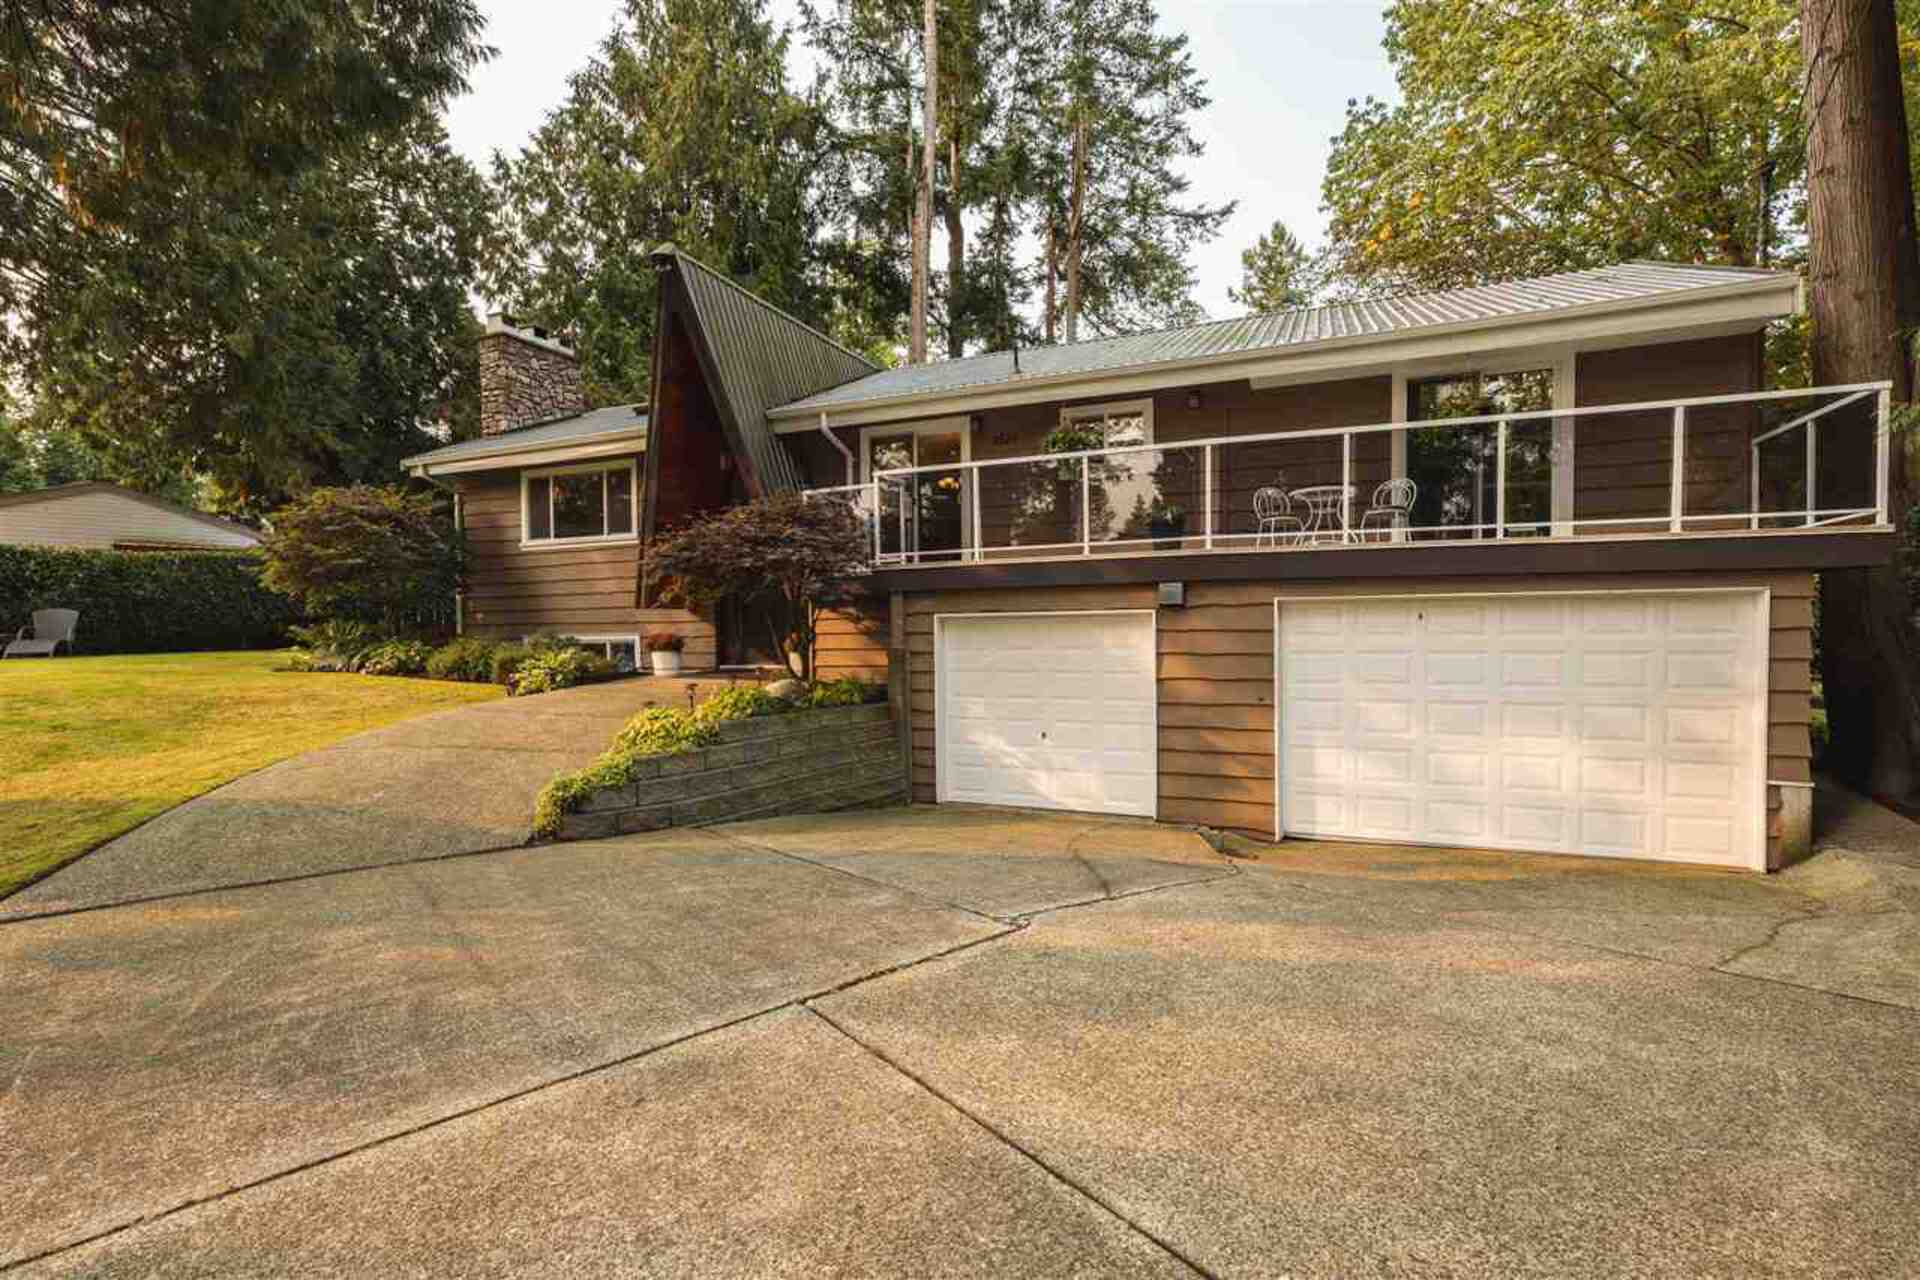 4528-southridge-crescent-murrayville-langley-05 at 4528 Southridge Crescent, Murrayville, Langley